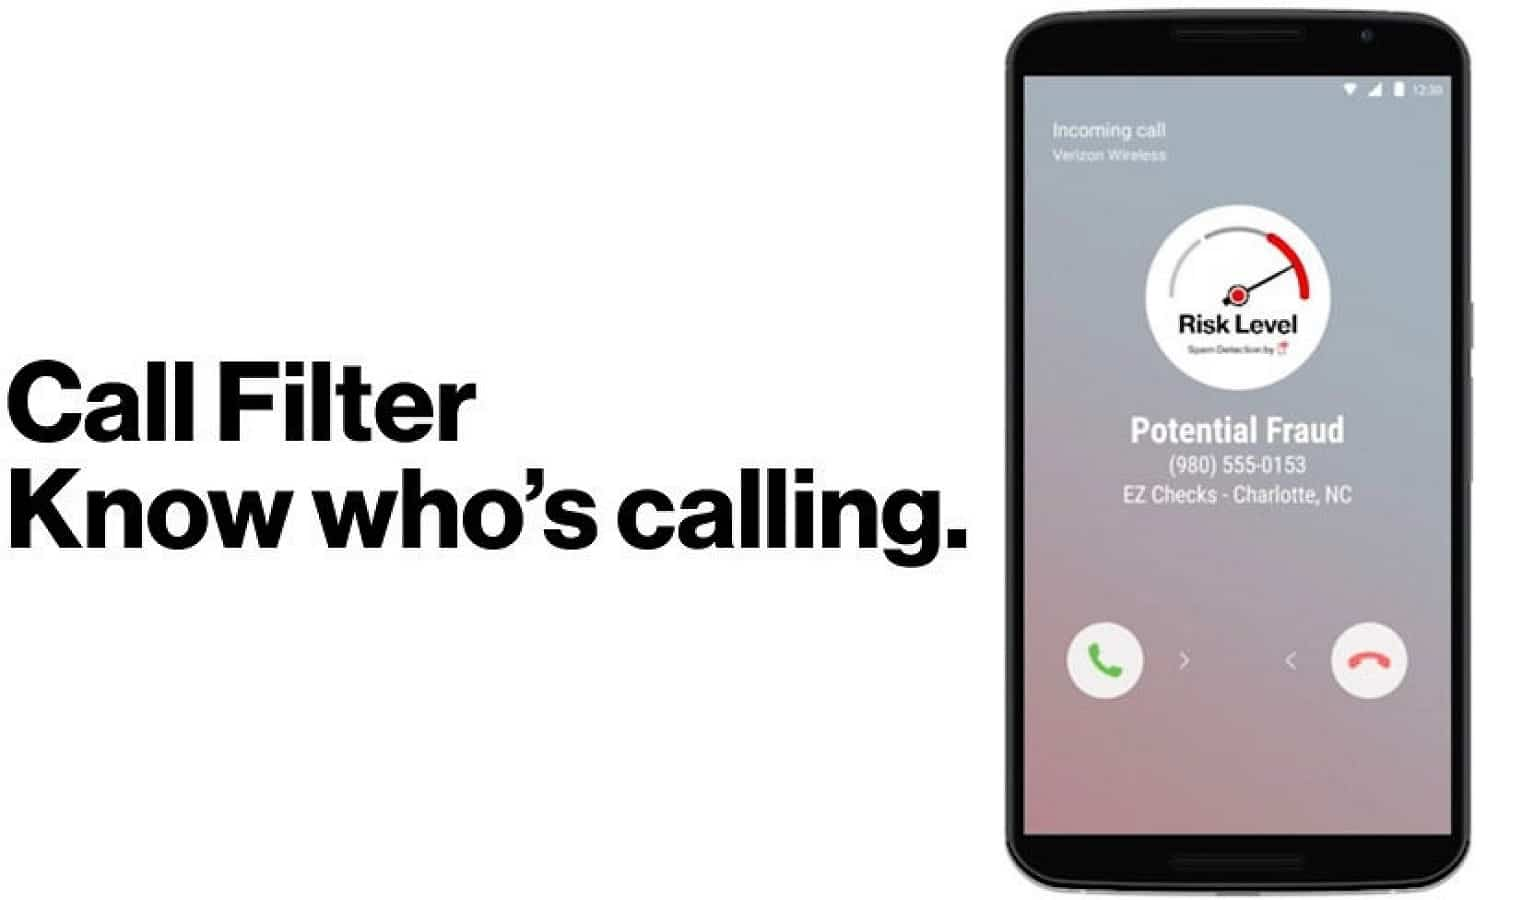 verizon call filter app